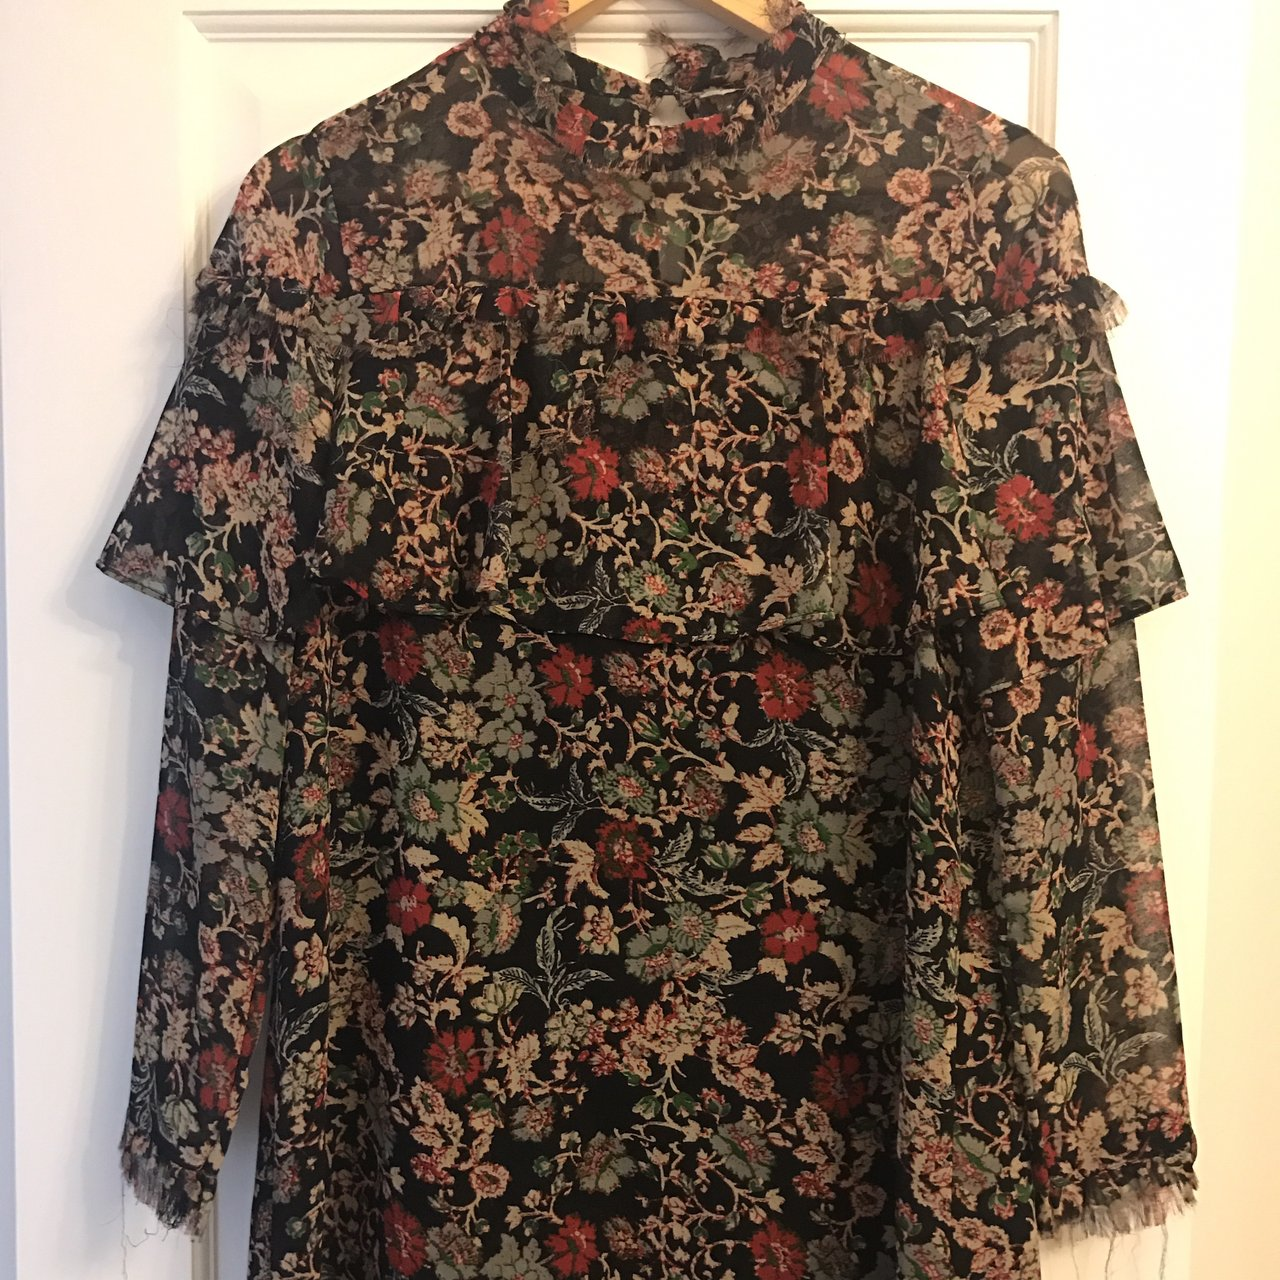 7062c626cb @naseemaj. 8 months ago. Bolton, United Kingdom. Zara high neck floral dress  with a ruffle and long sleeves.